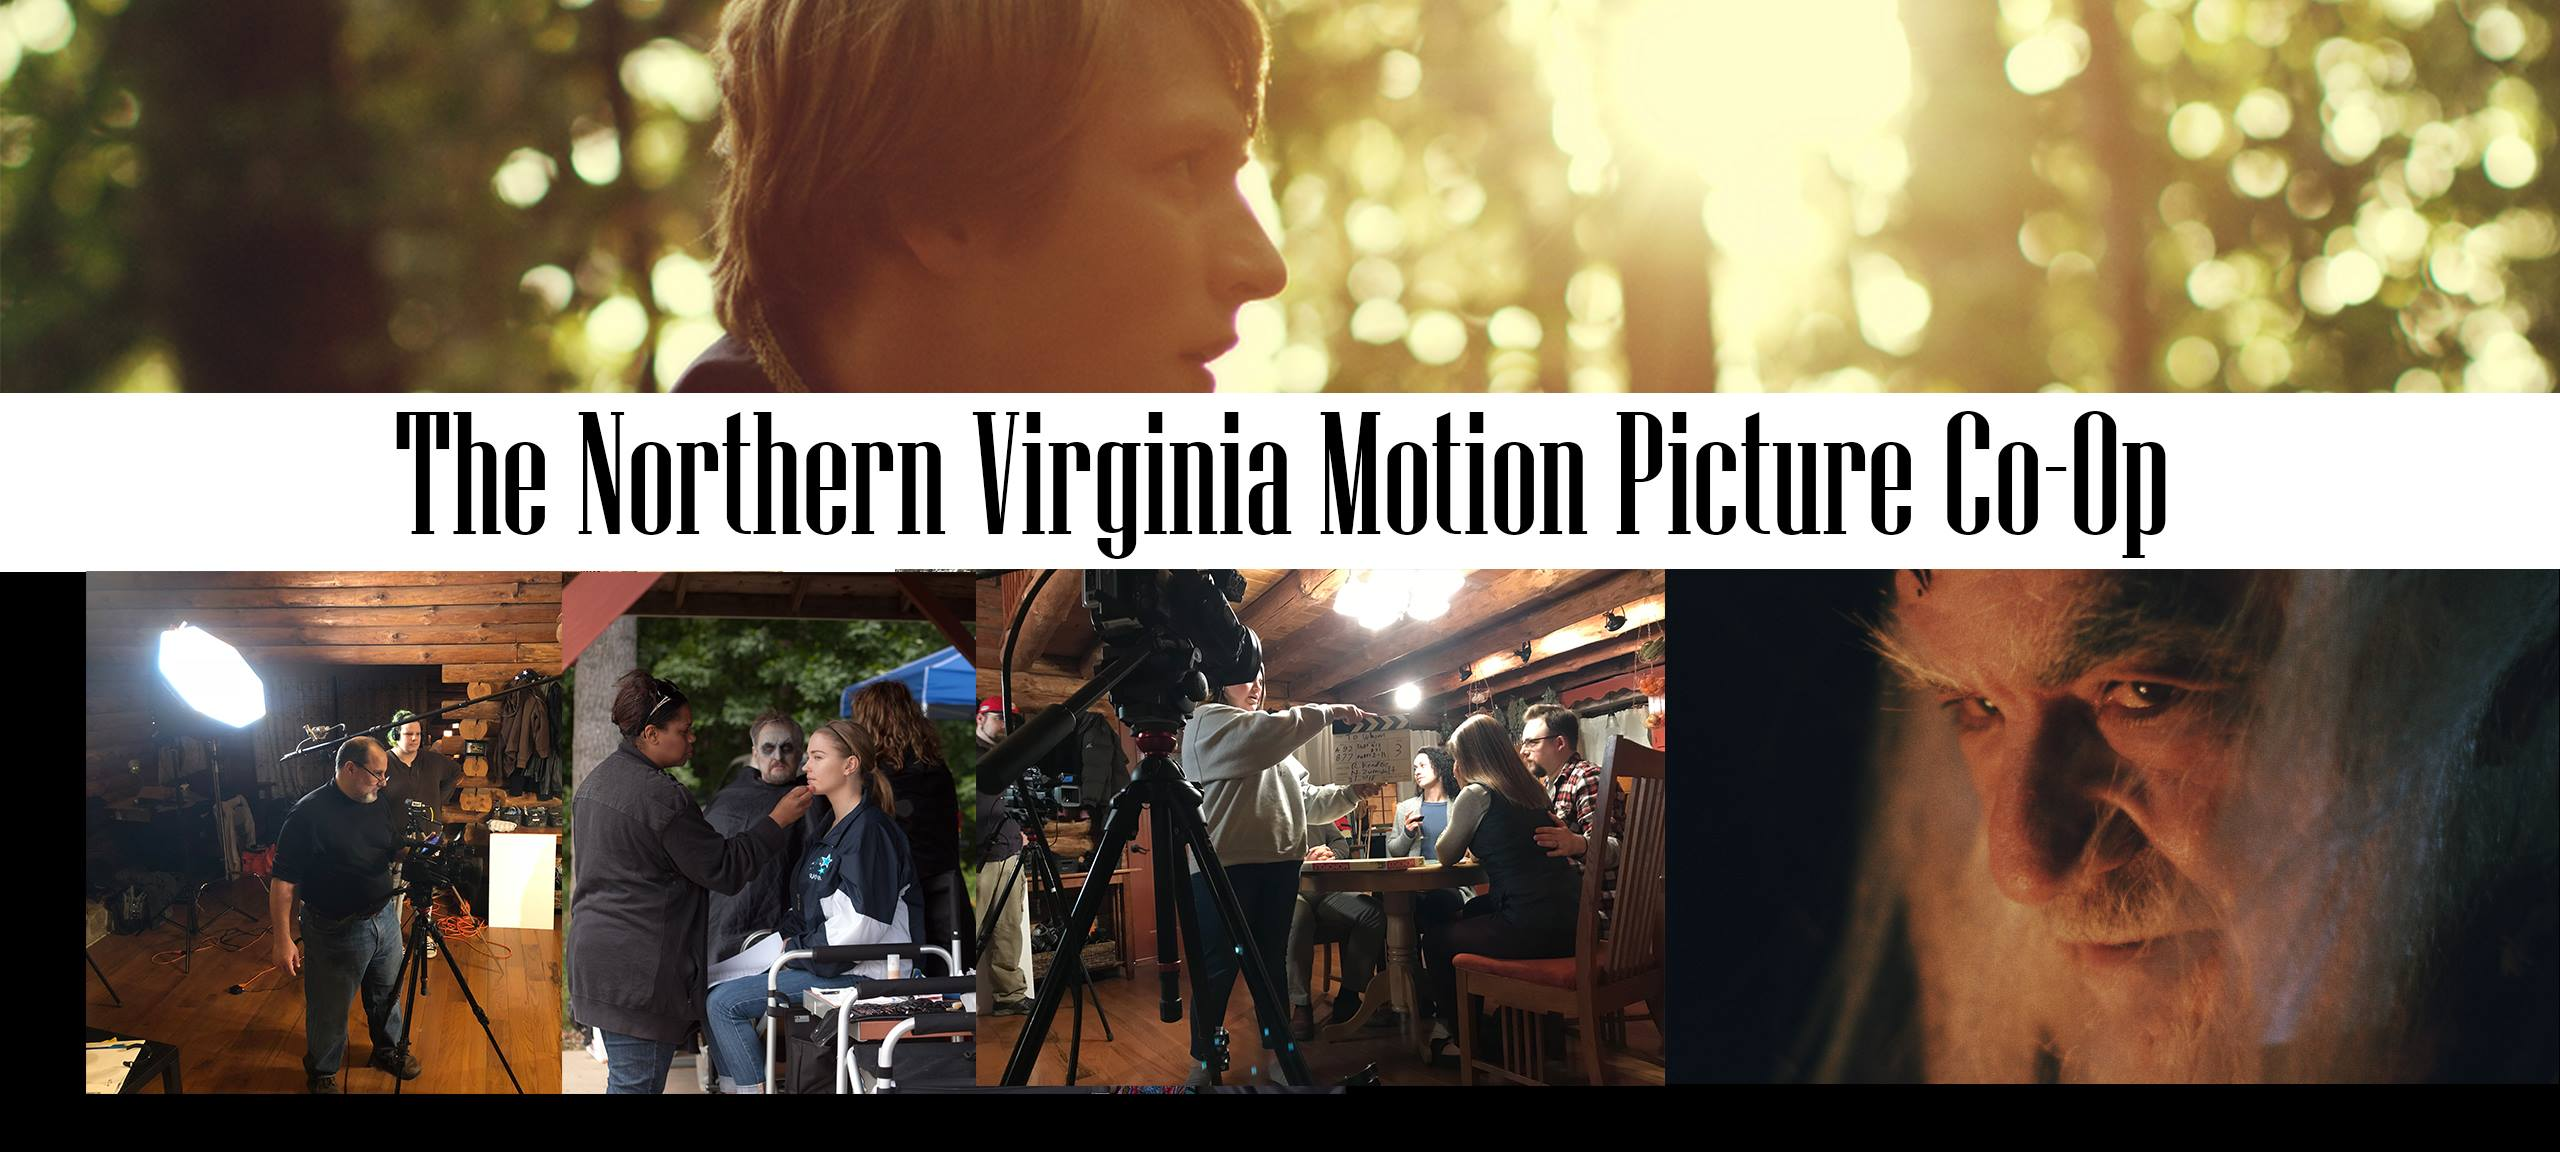 The Northern Virginia Motion Picture Co-Op